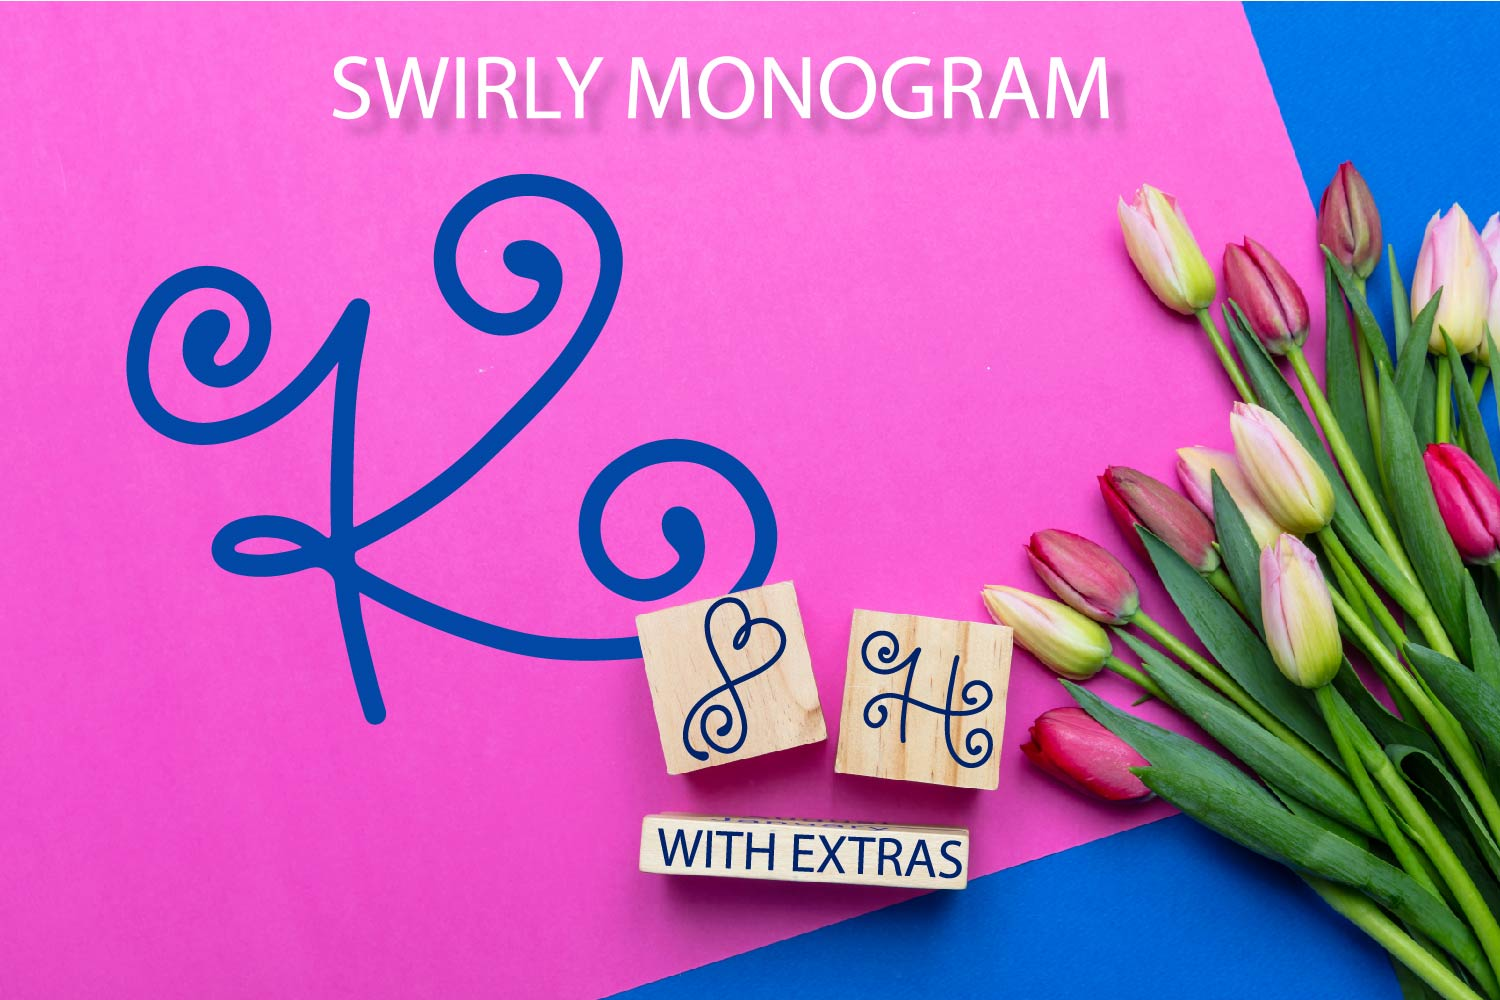 Swirly Monogram - With Swooshy Monoline Extras example image 1